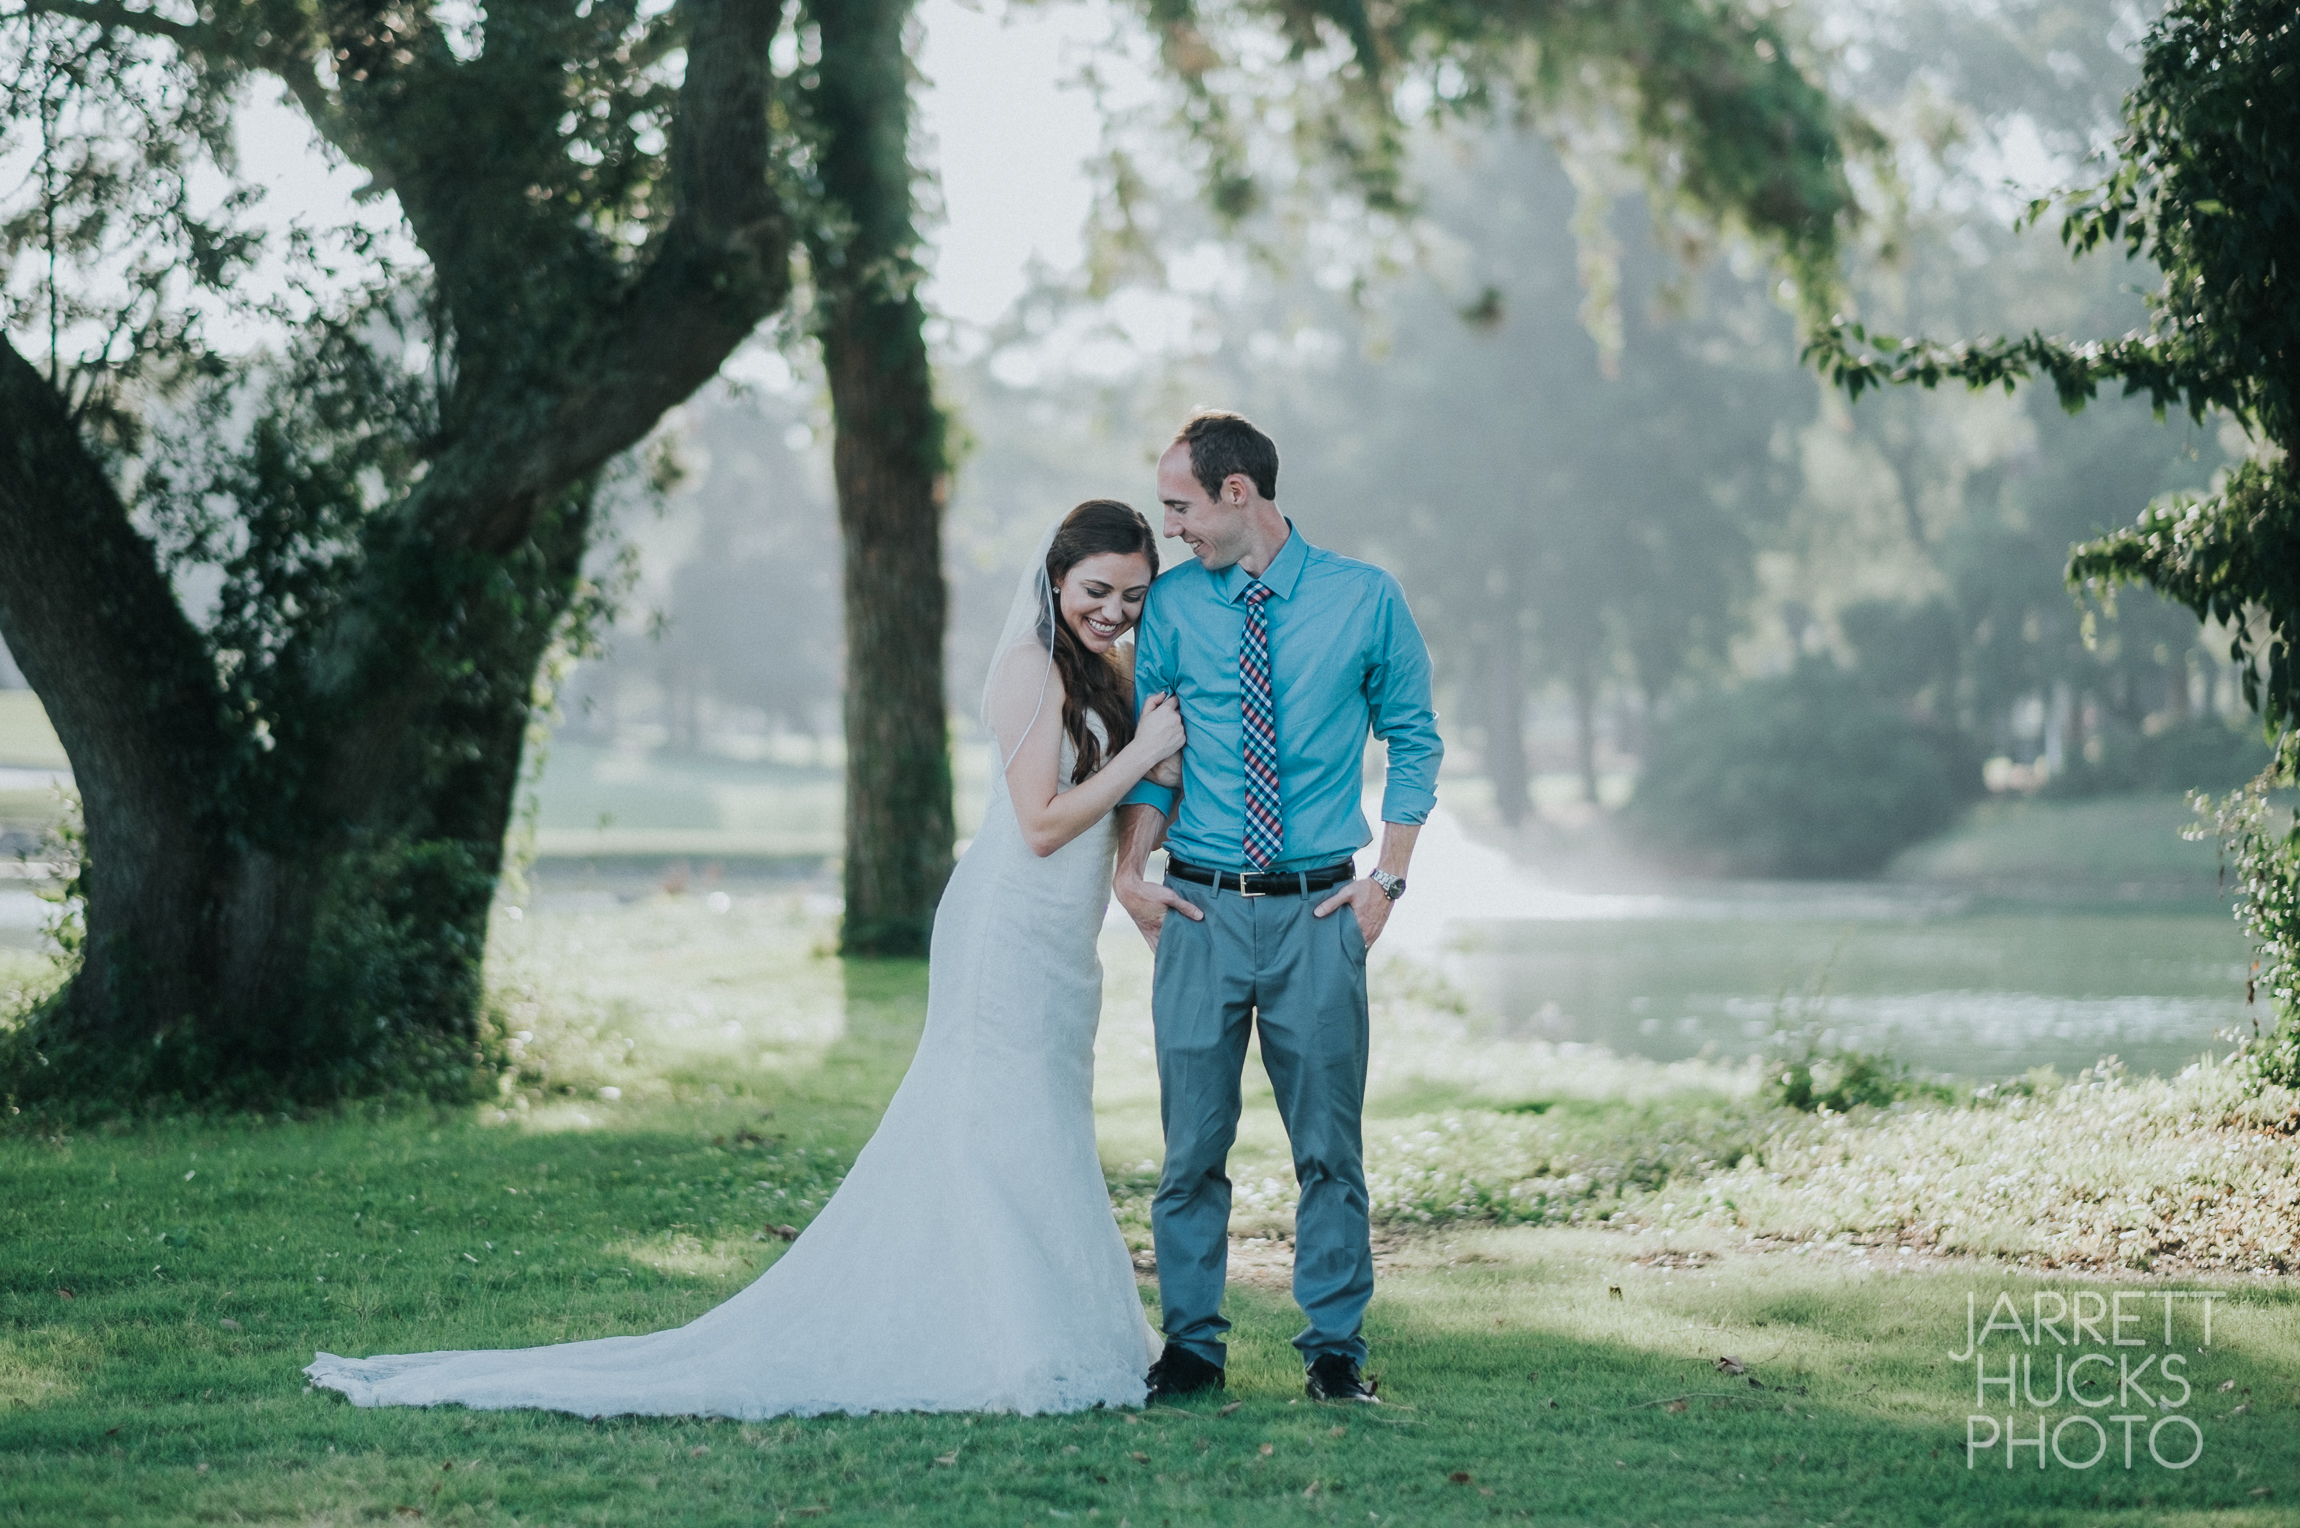 Austin and Nikki Wedding-67.jpg